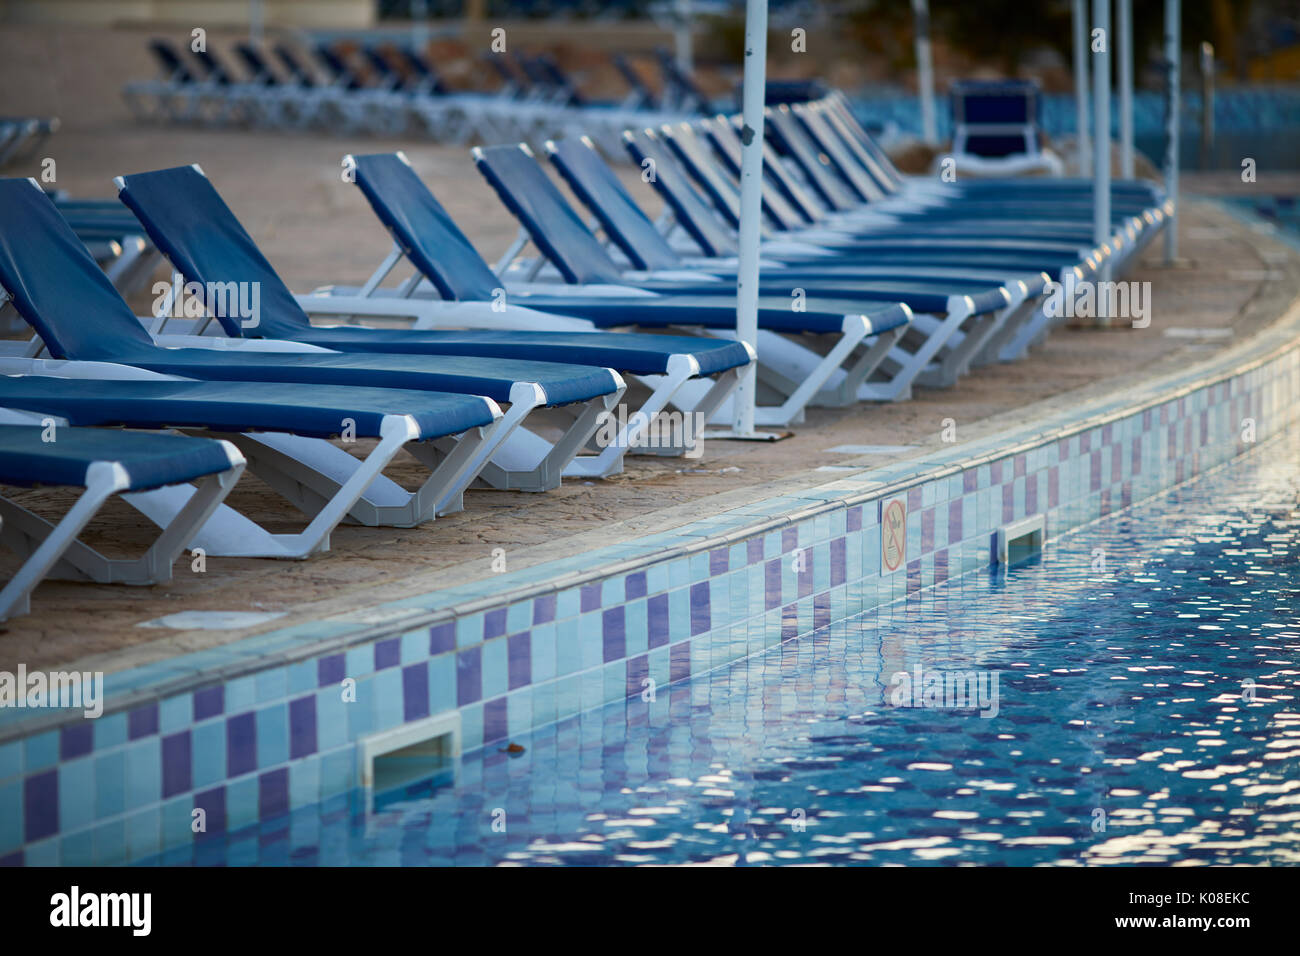 Pool loungers stock photos pool loungers stock images alamy for Phoenix swimming pool white city